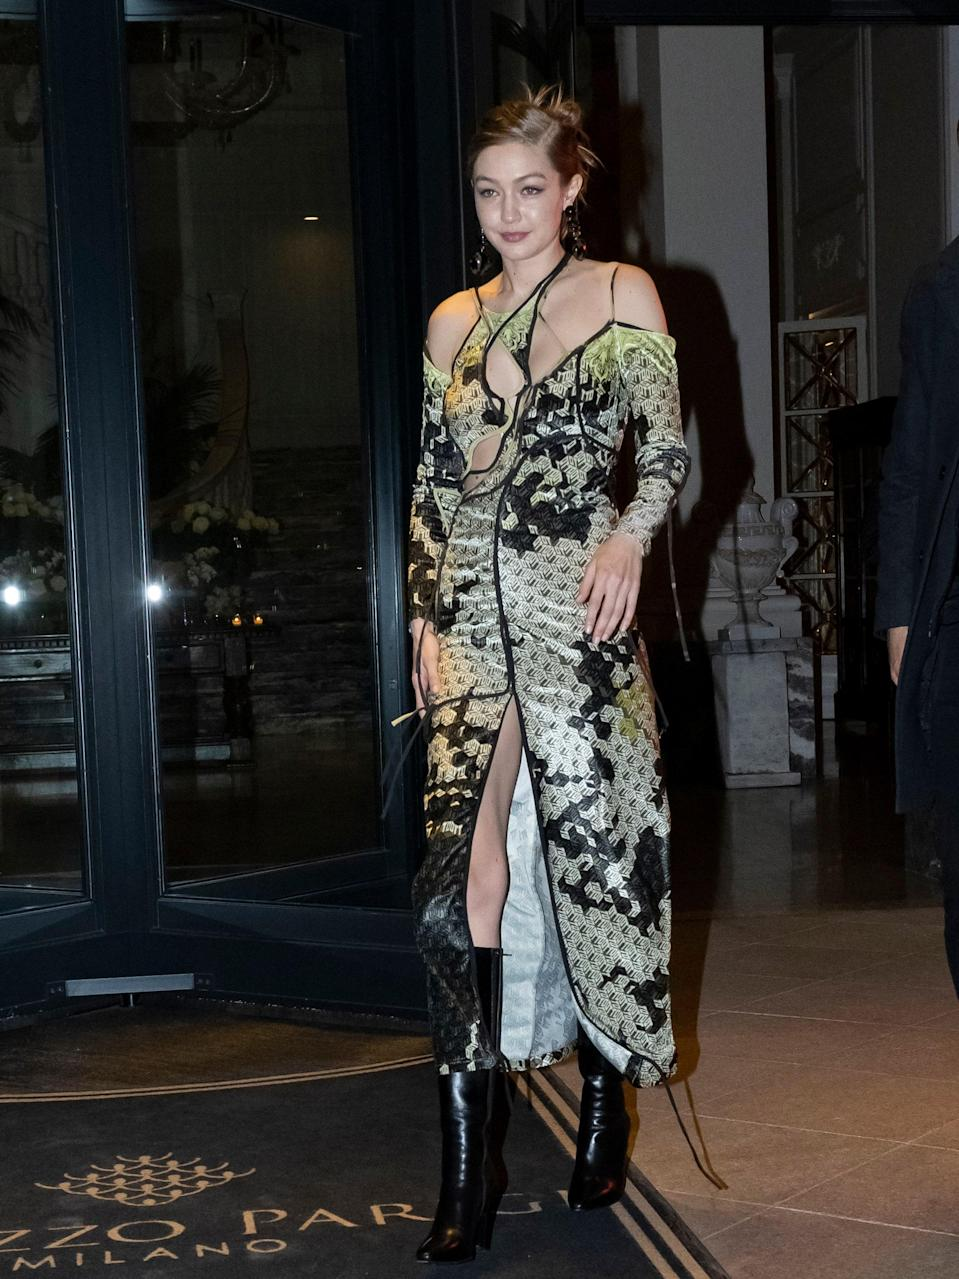 Gigi in Ottolinger and killer heeled boots? Need we say more?